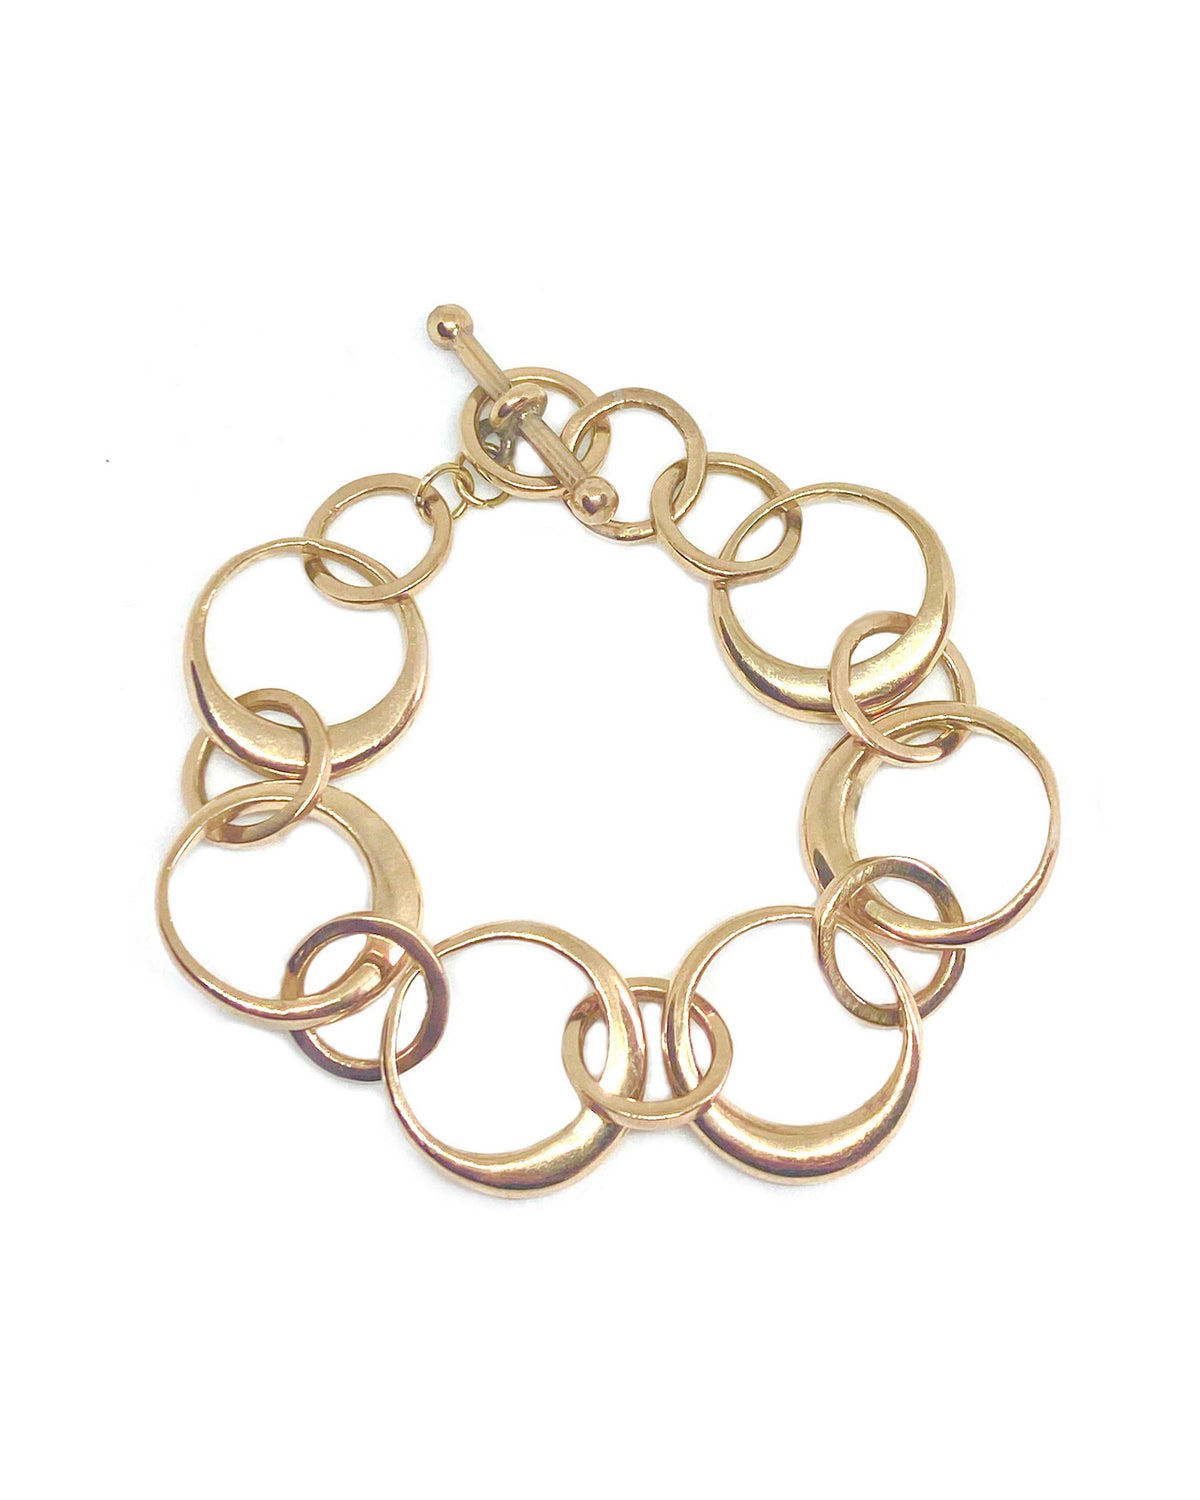 THIN ROUNDED RING CHAIN BRACELET